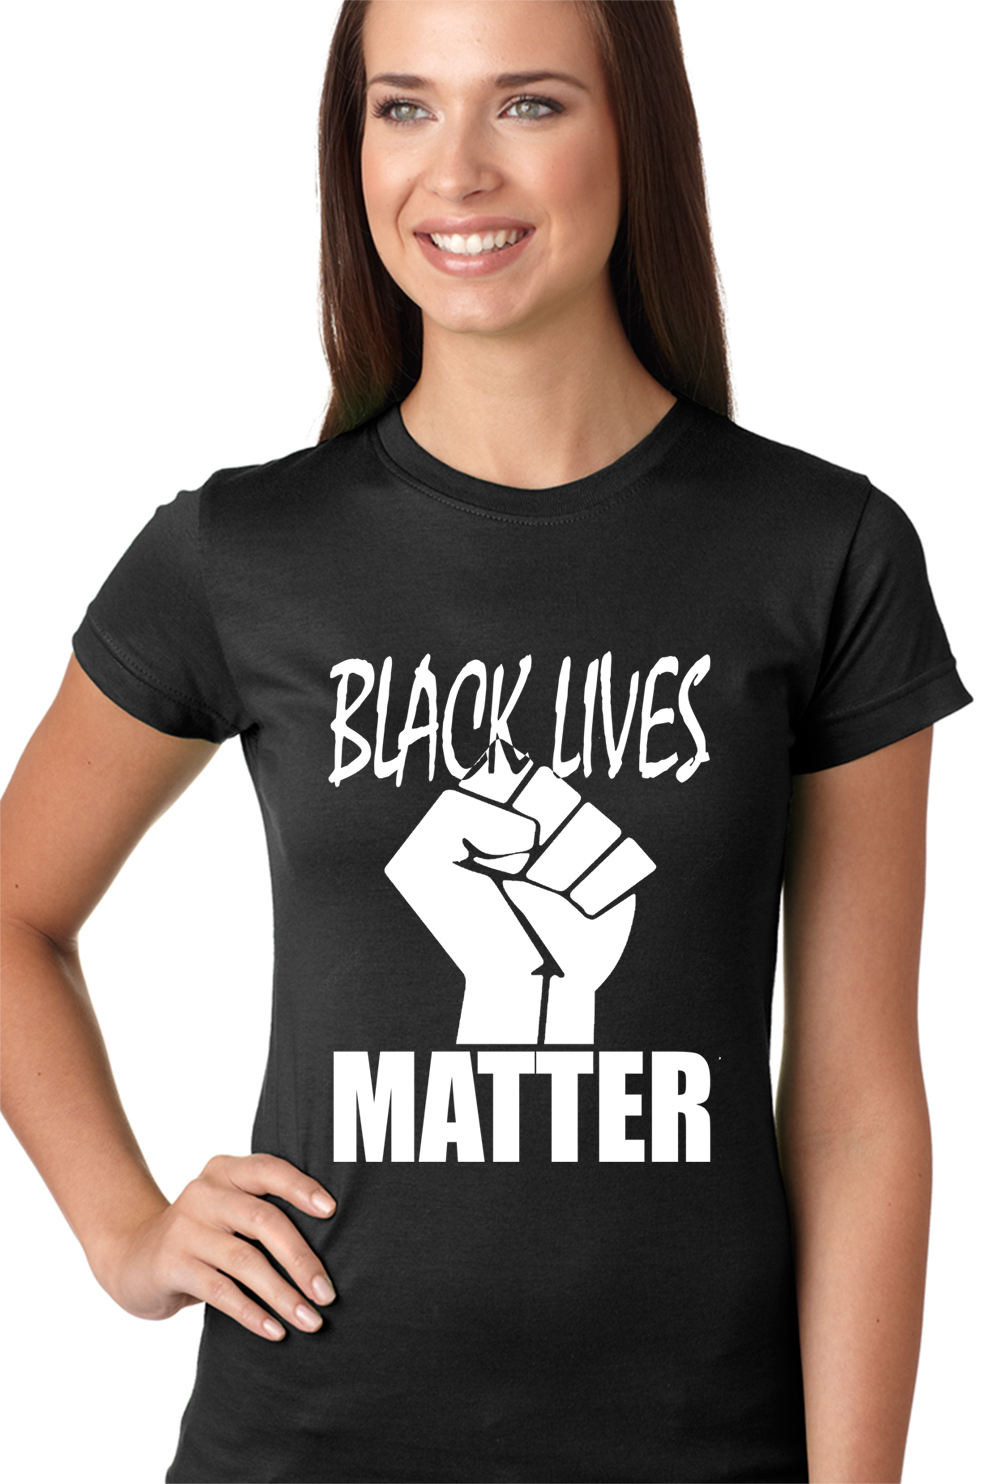 Black Lives Matter Fist Girls T-shirt